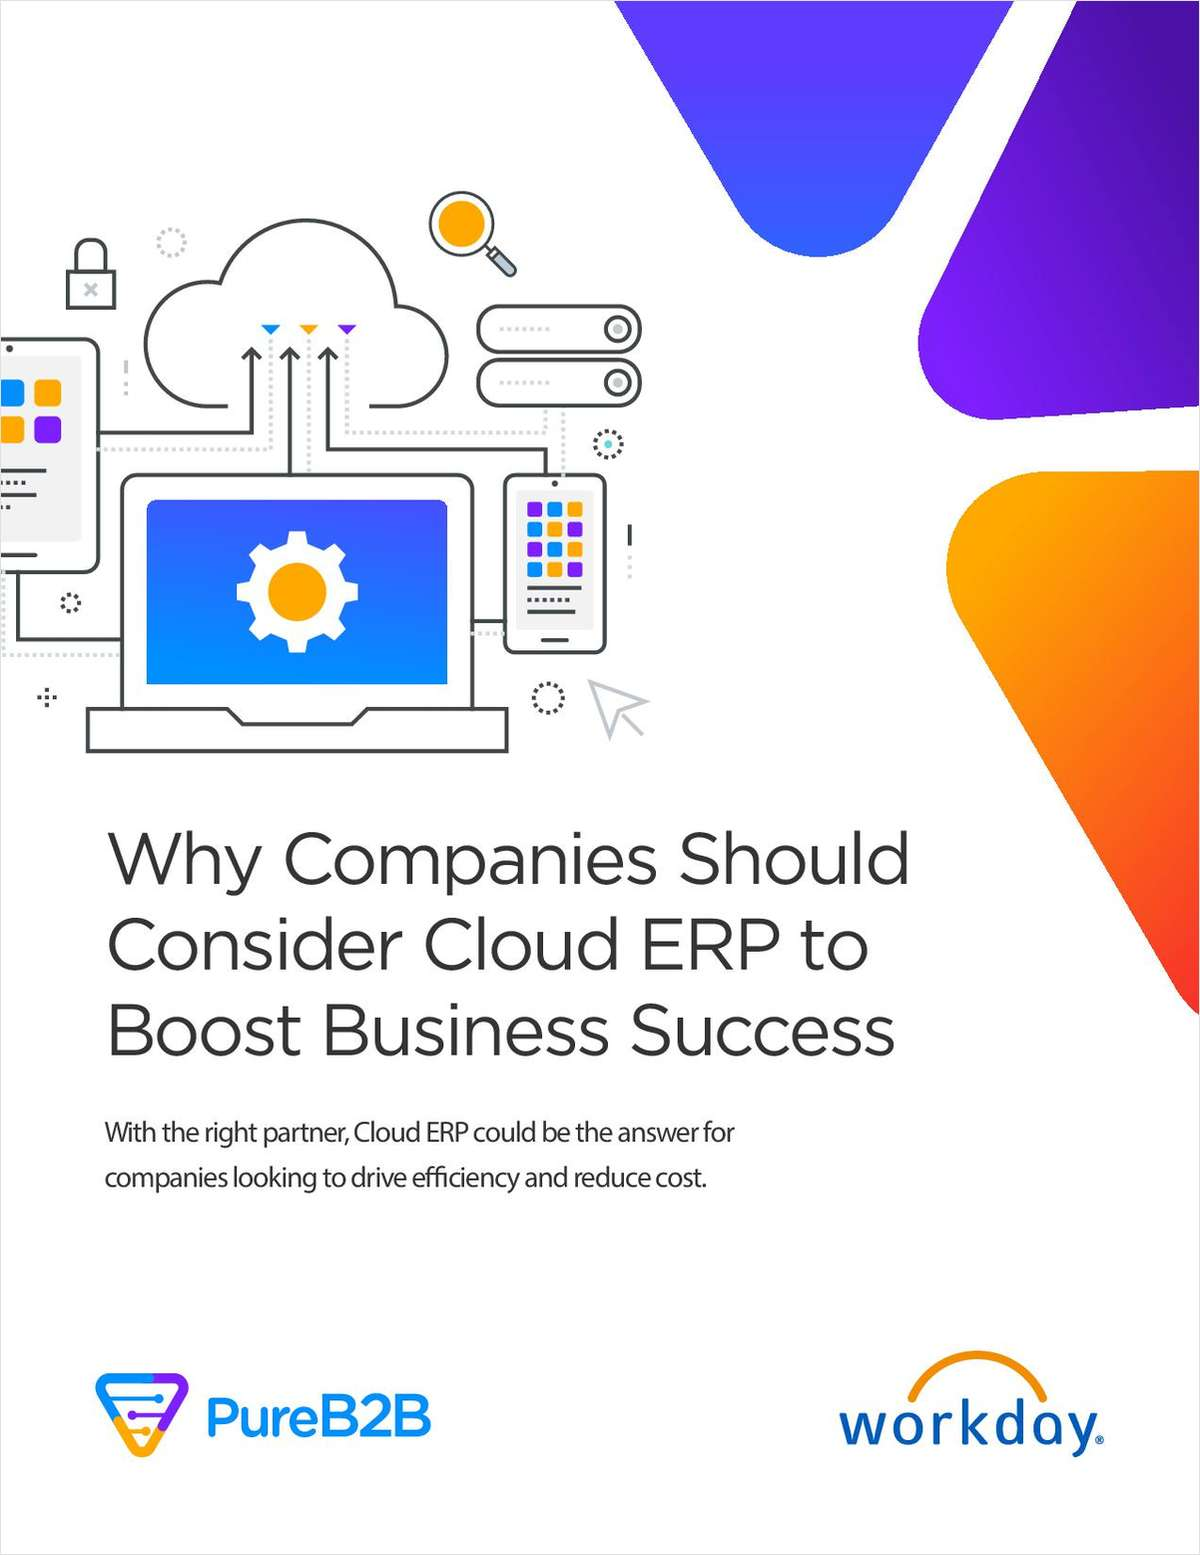 Why Companies Should Consider Cloud ERP to Boost Business Success